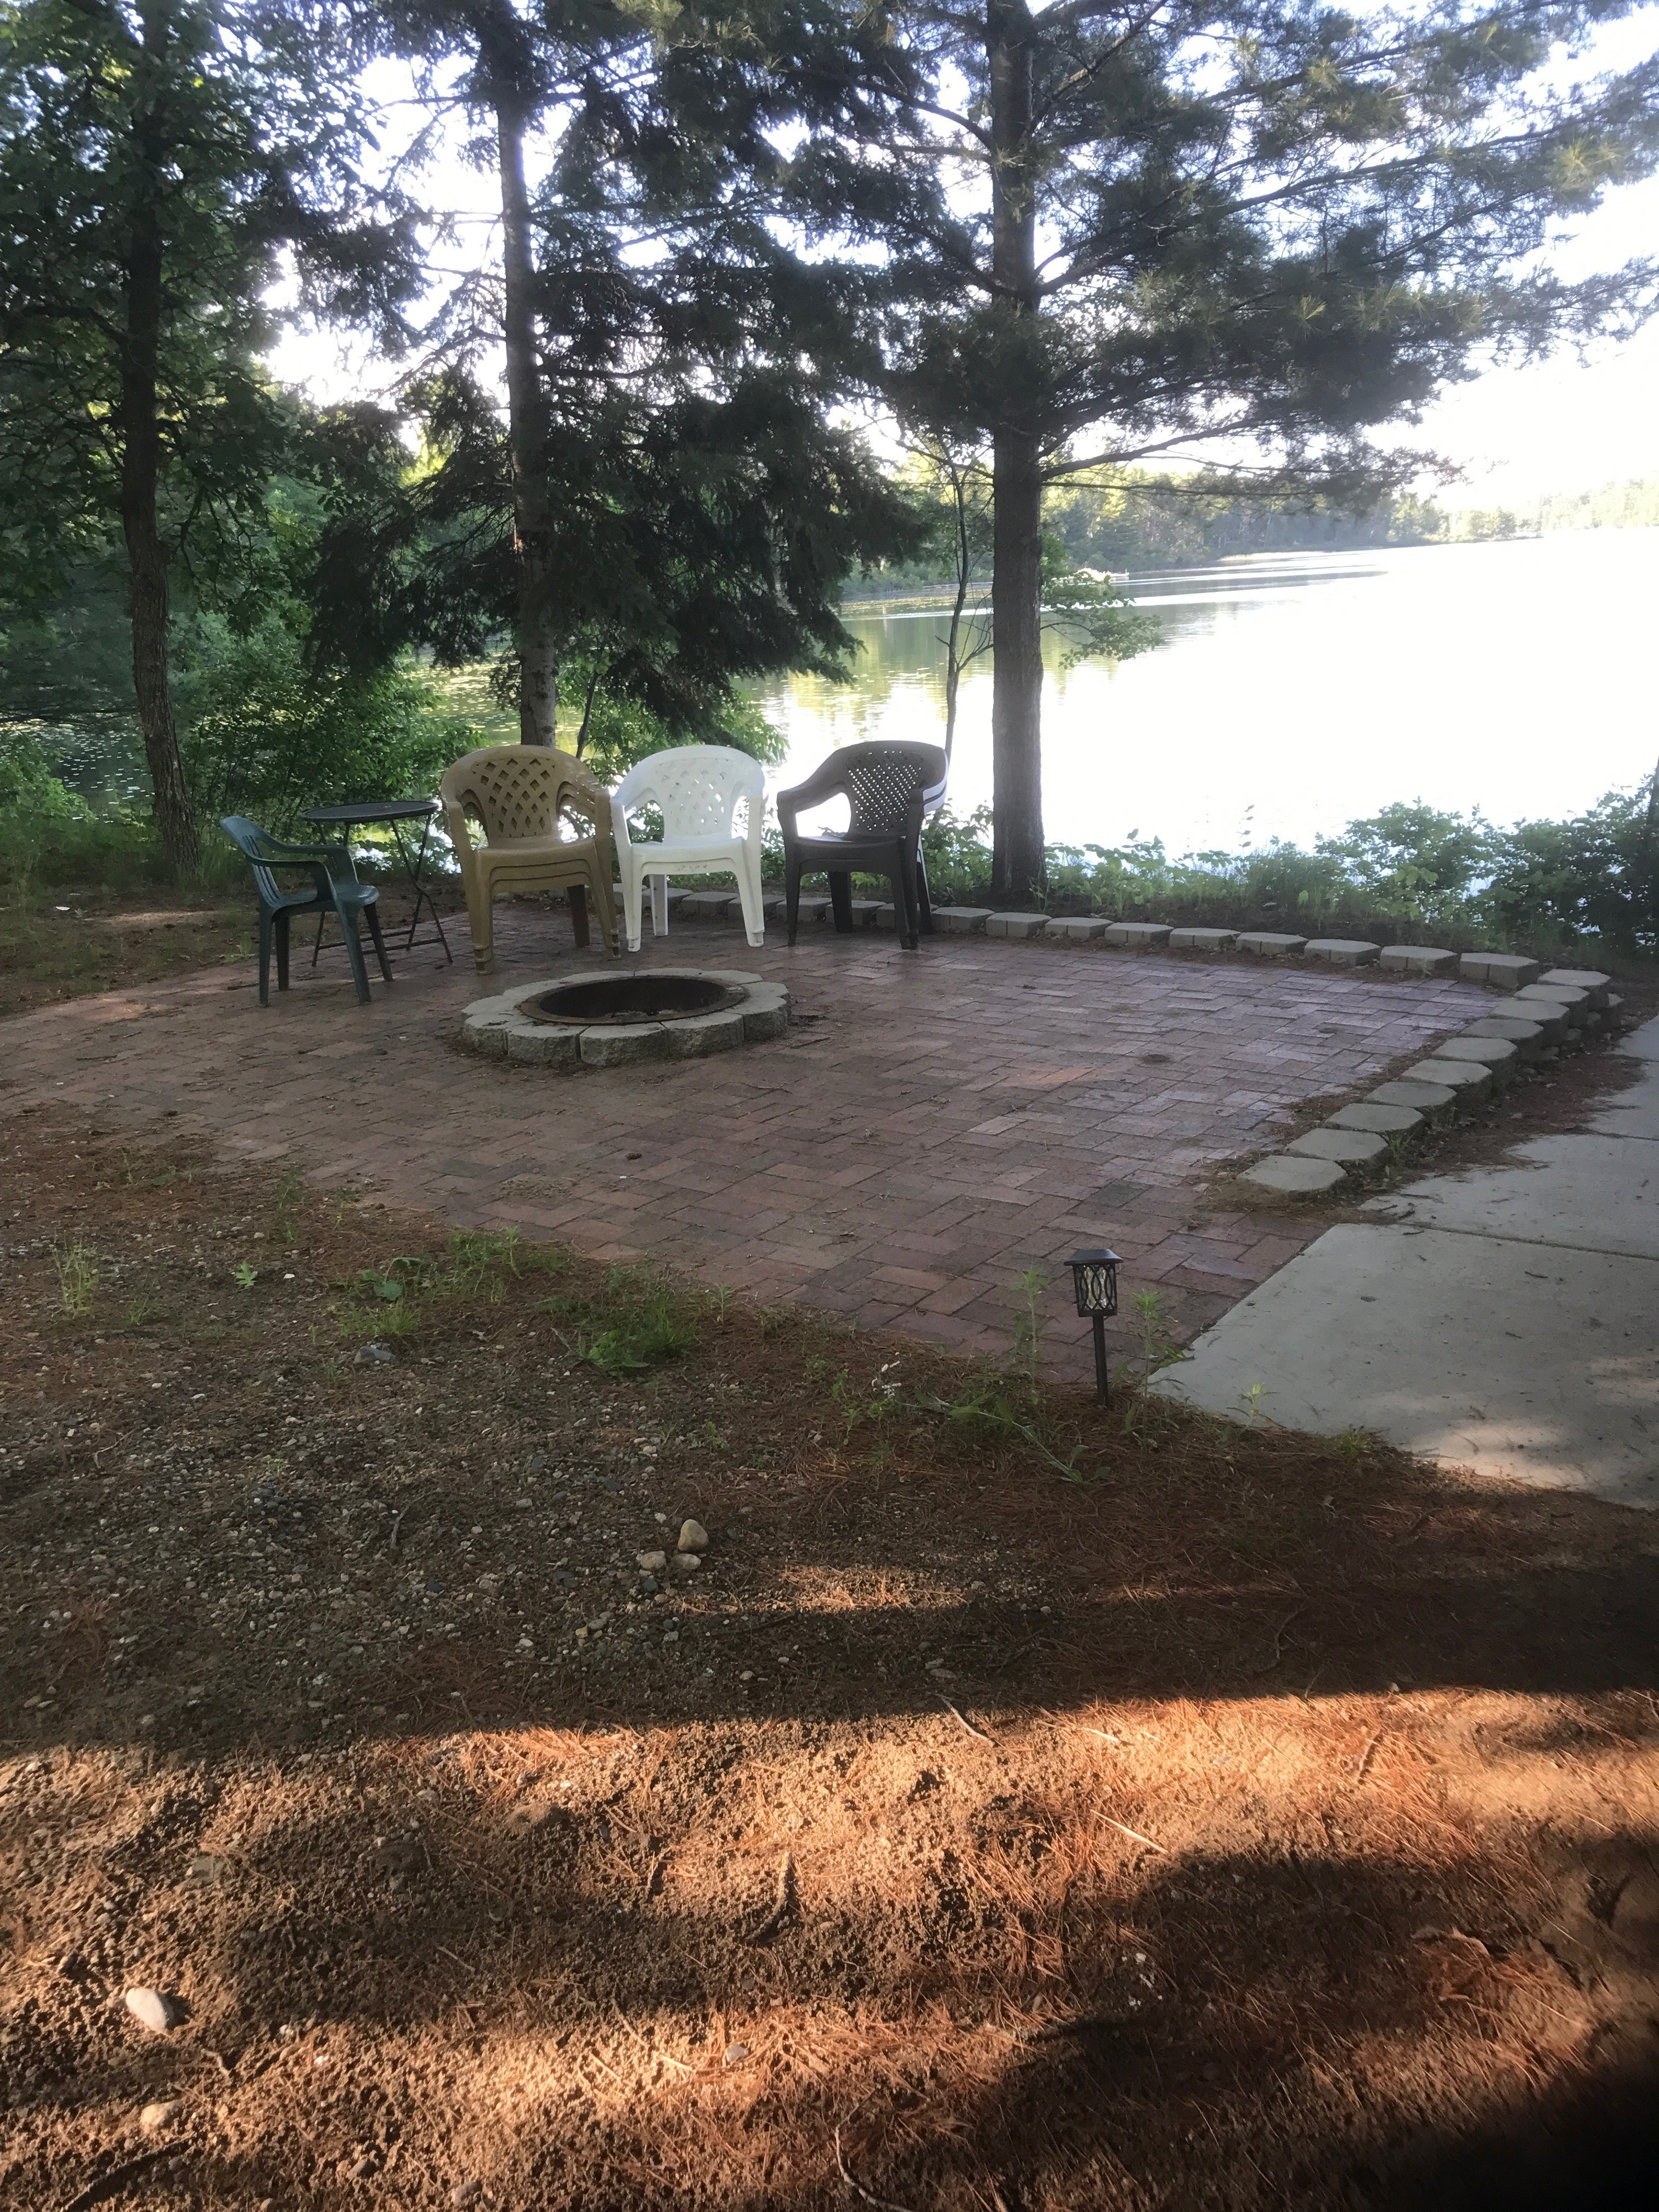 Bliss-House-fire-ring-w-lake